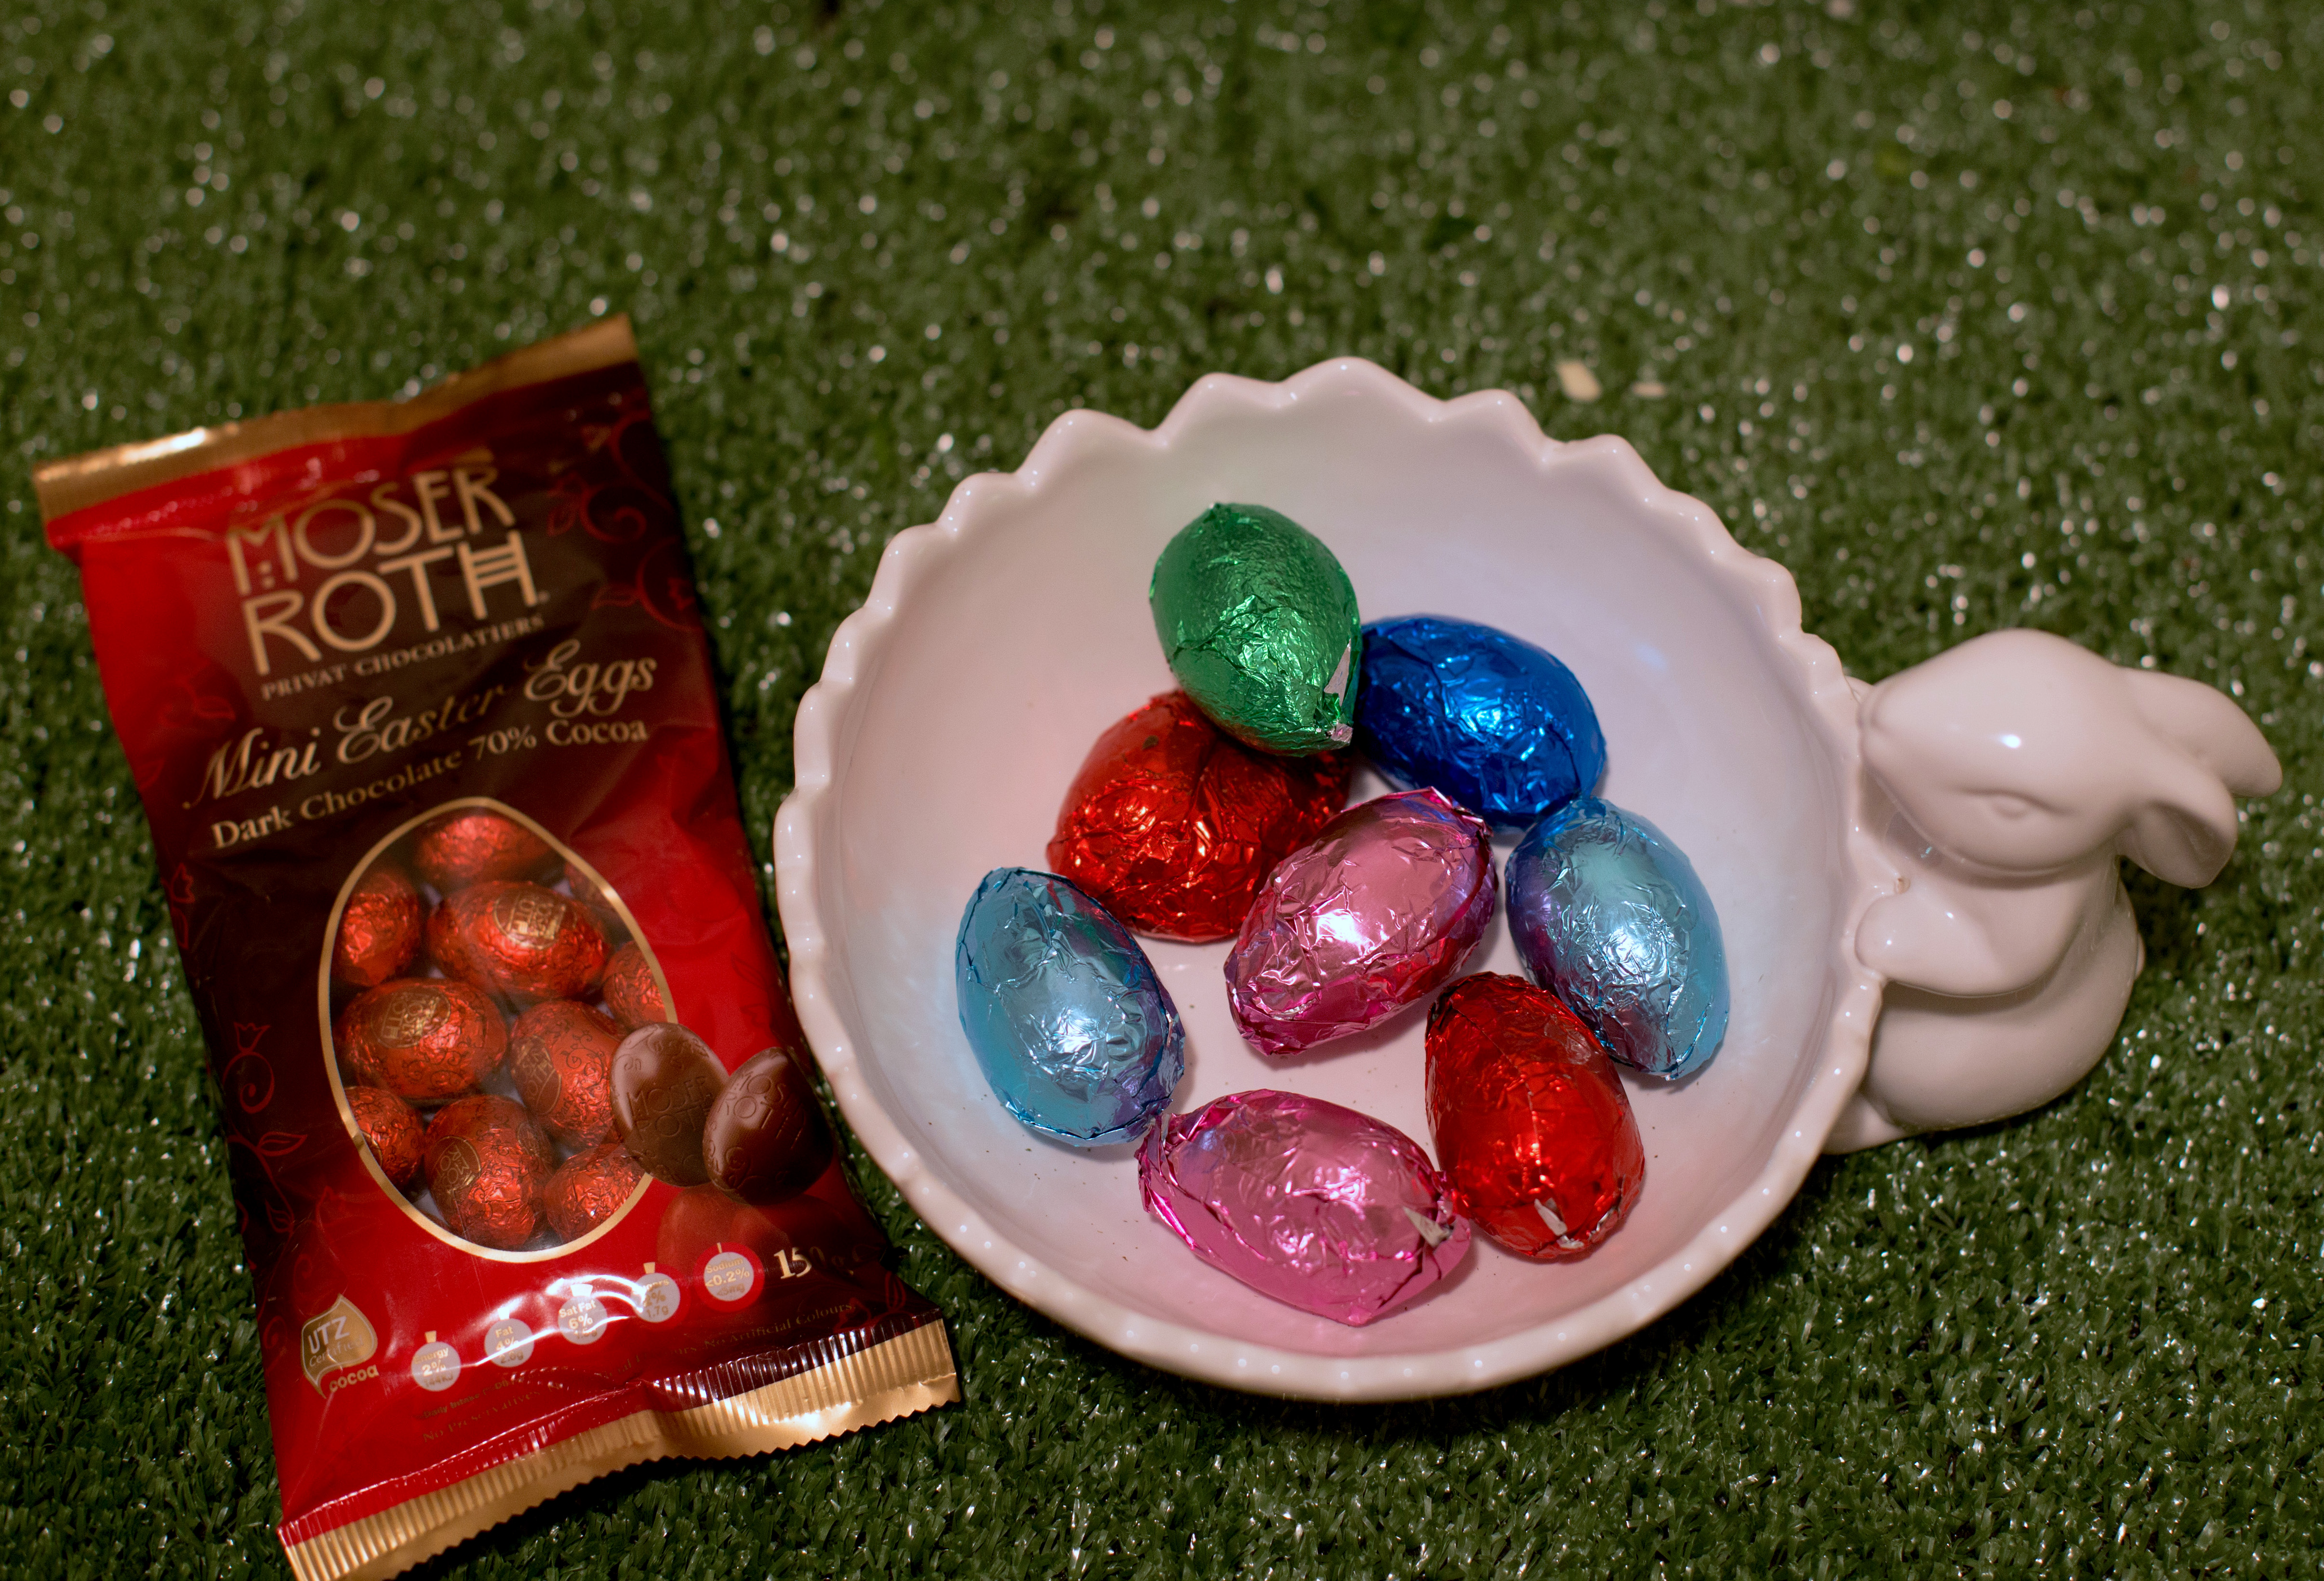 Moser Roth Eggs From Aldi